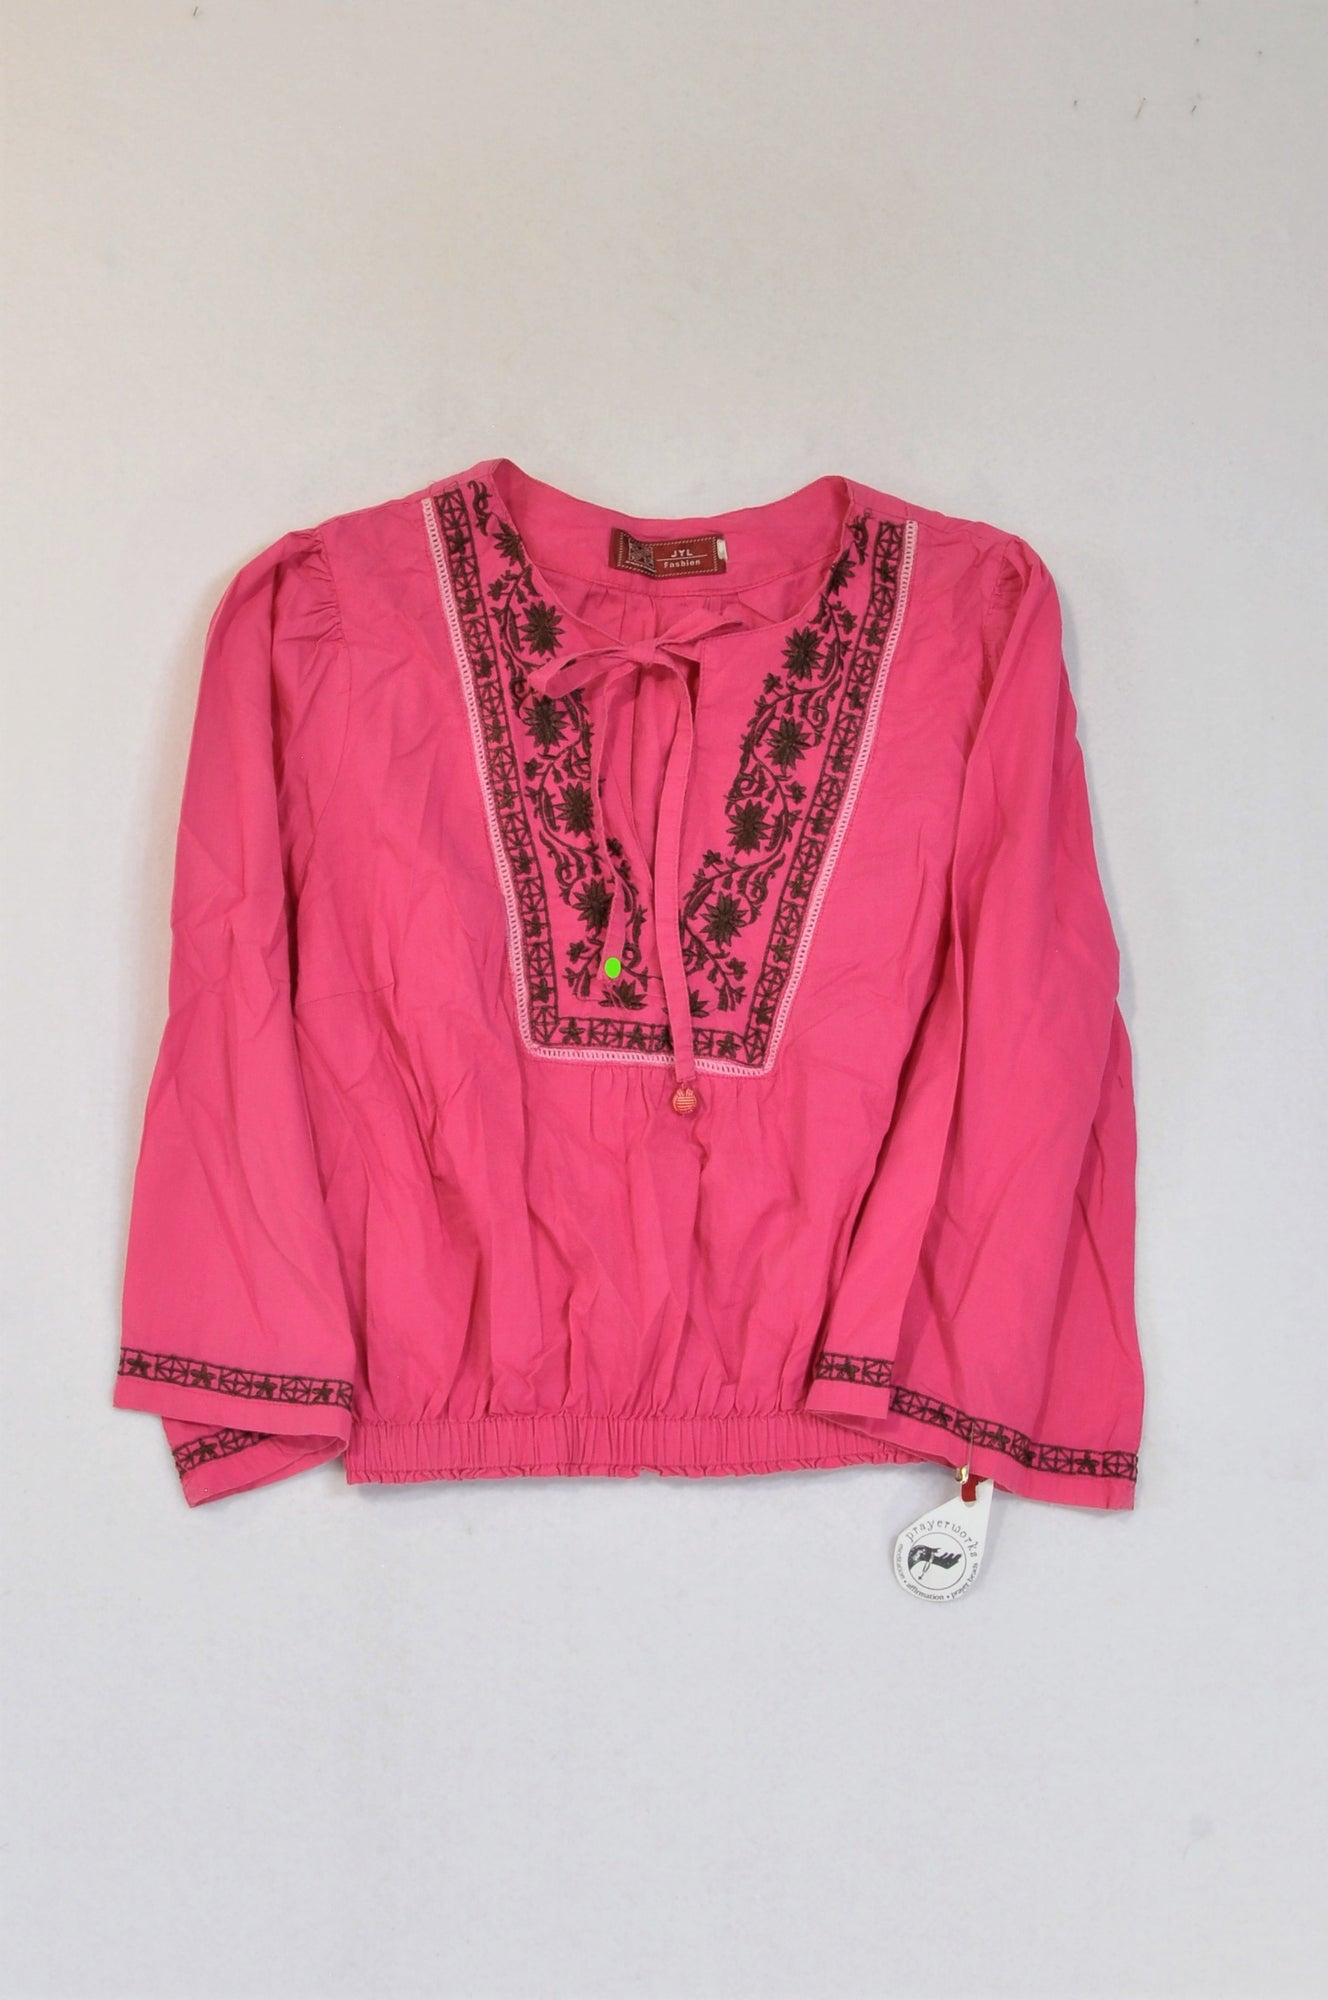 JYL Fashion Pink & Brown Embroidered Trim Blouse Women Size L